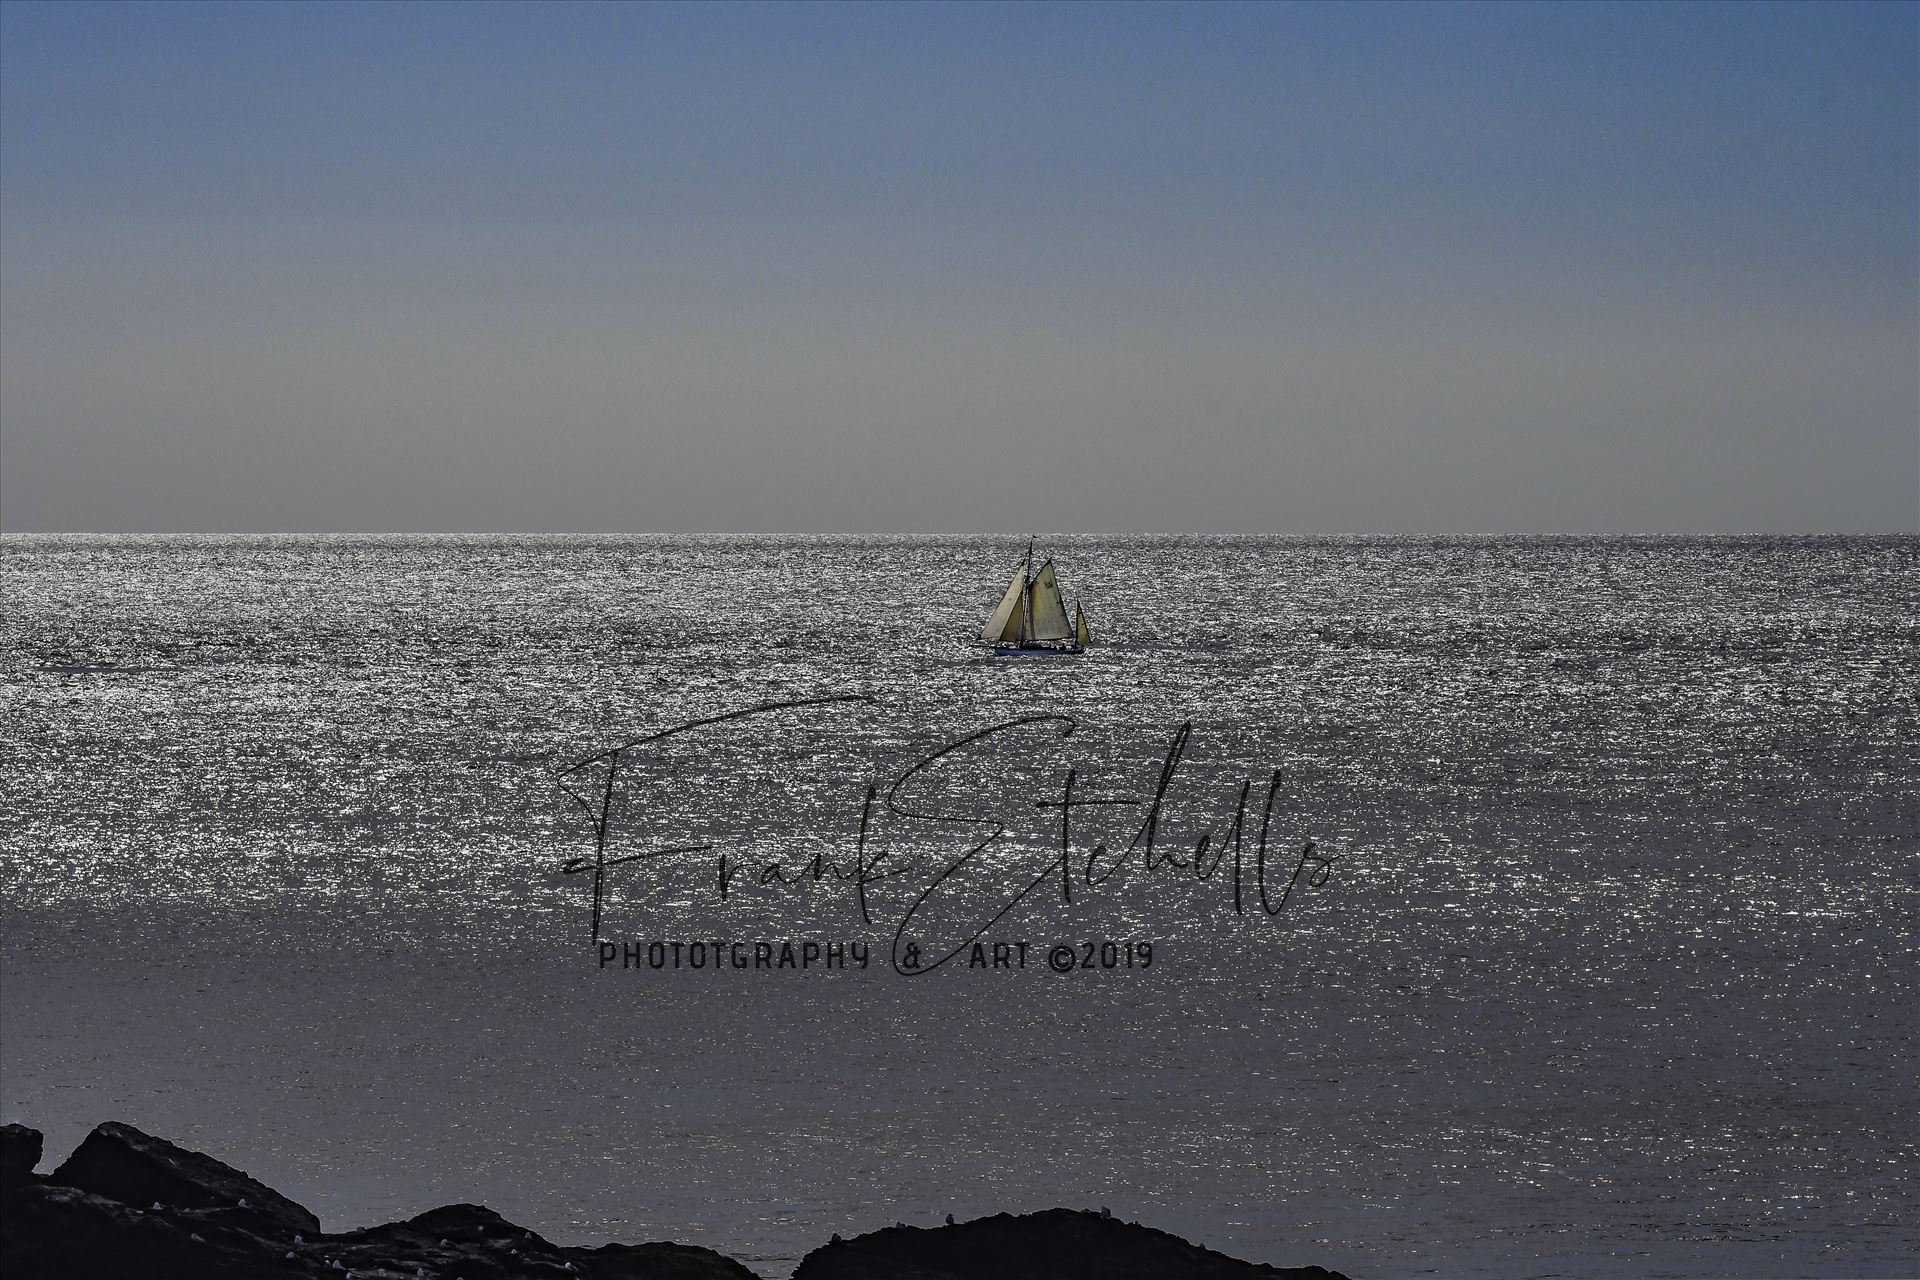 Hazy Days Sailing 3 - Walking the South West Coastal path at The Lizard, Cornwall on a glorious day in August 2017, This Ketch was sailing on the shimmery sea with a blue cloudless sky and haze on the horizon. Gin & Tonic, Rum & Lime Time.